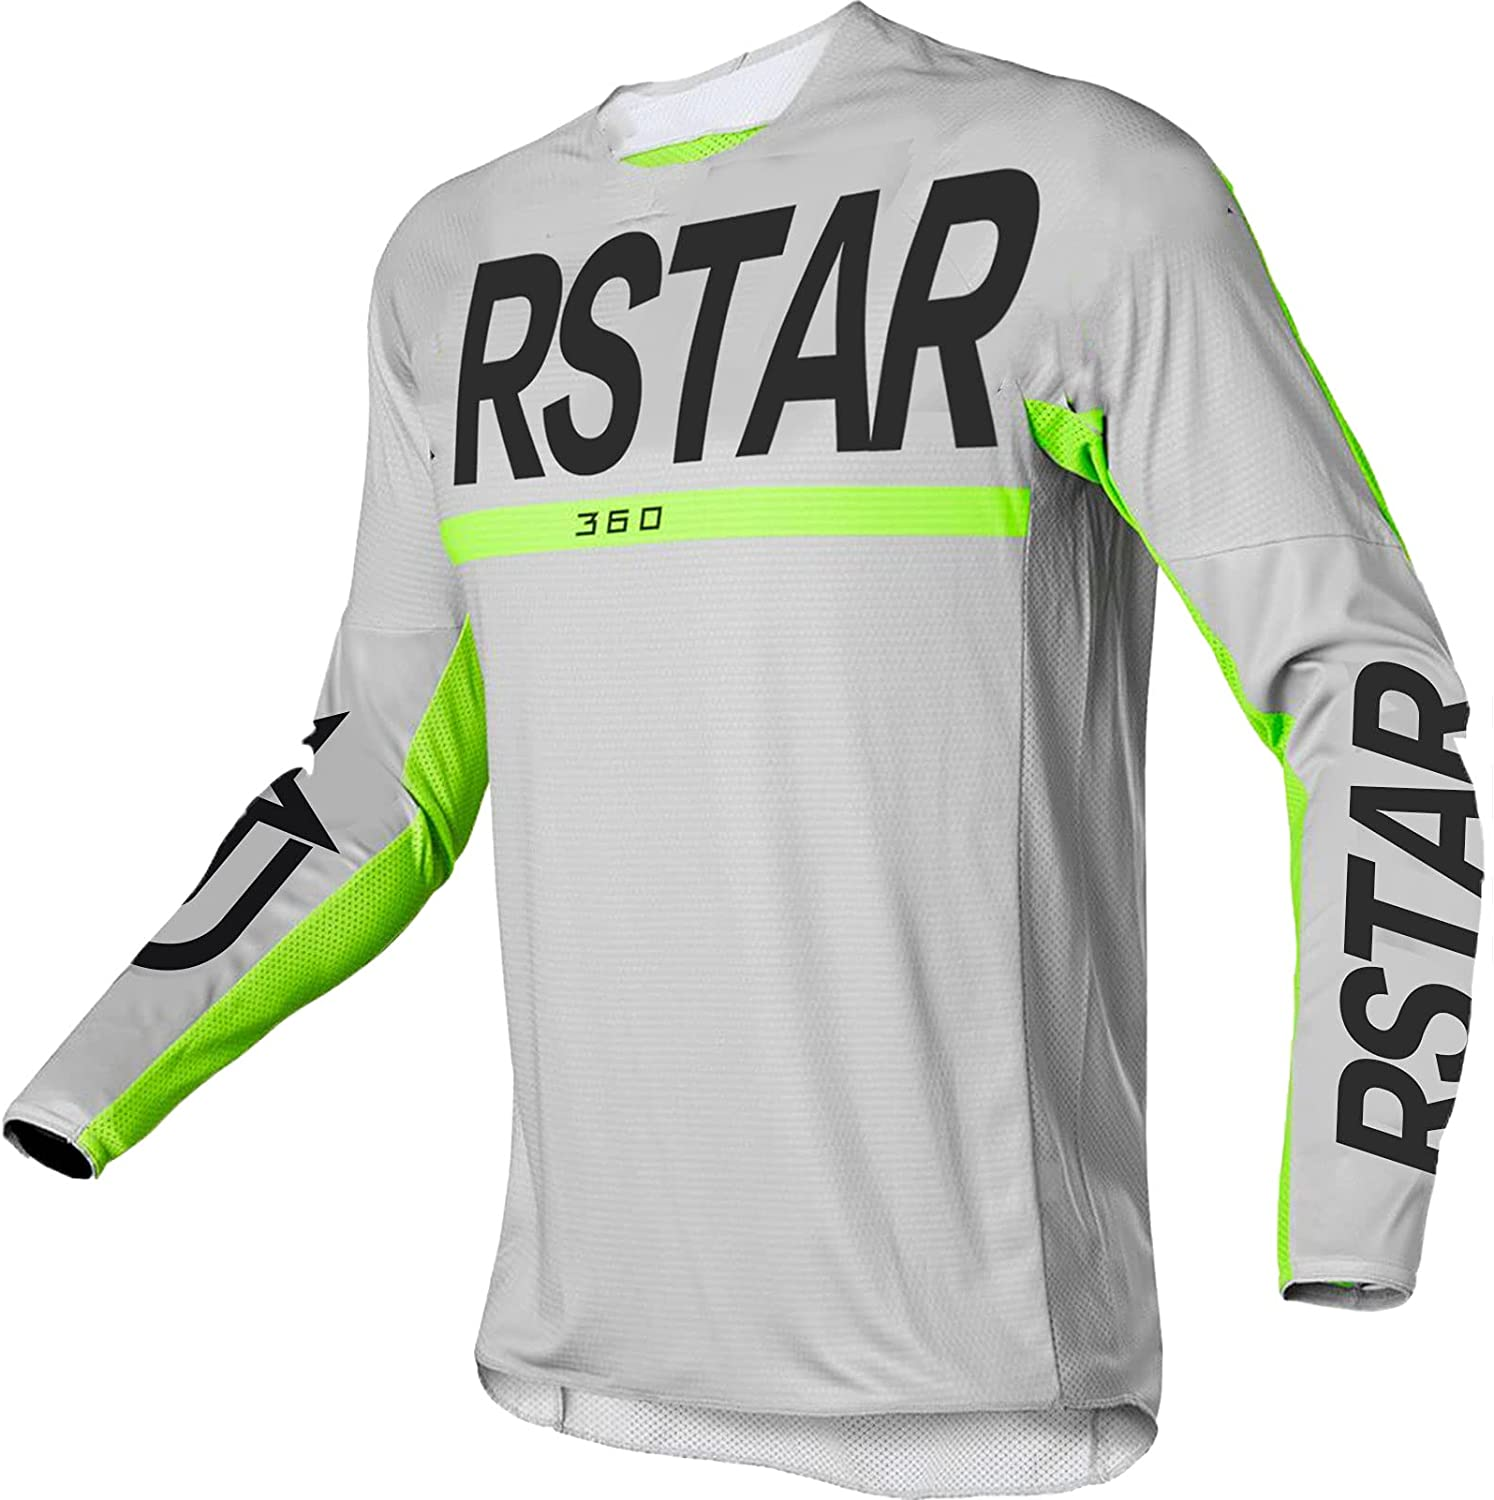 Rstar Mens Cycling Motocross Jersey Long Japan Maker New Bike Dirt MTB All items in the store Sleeves S